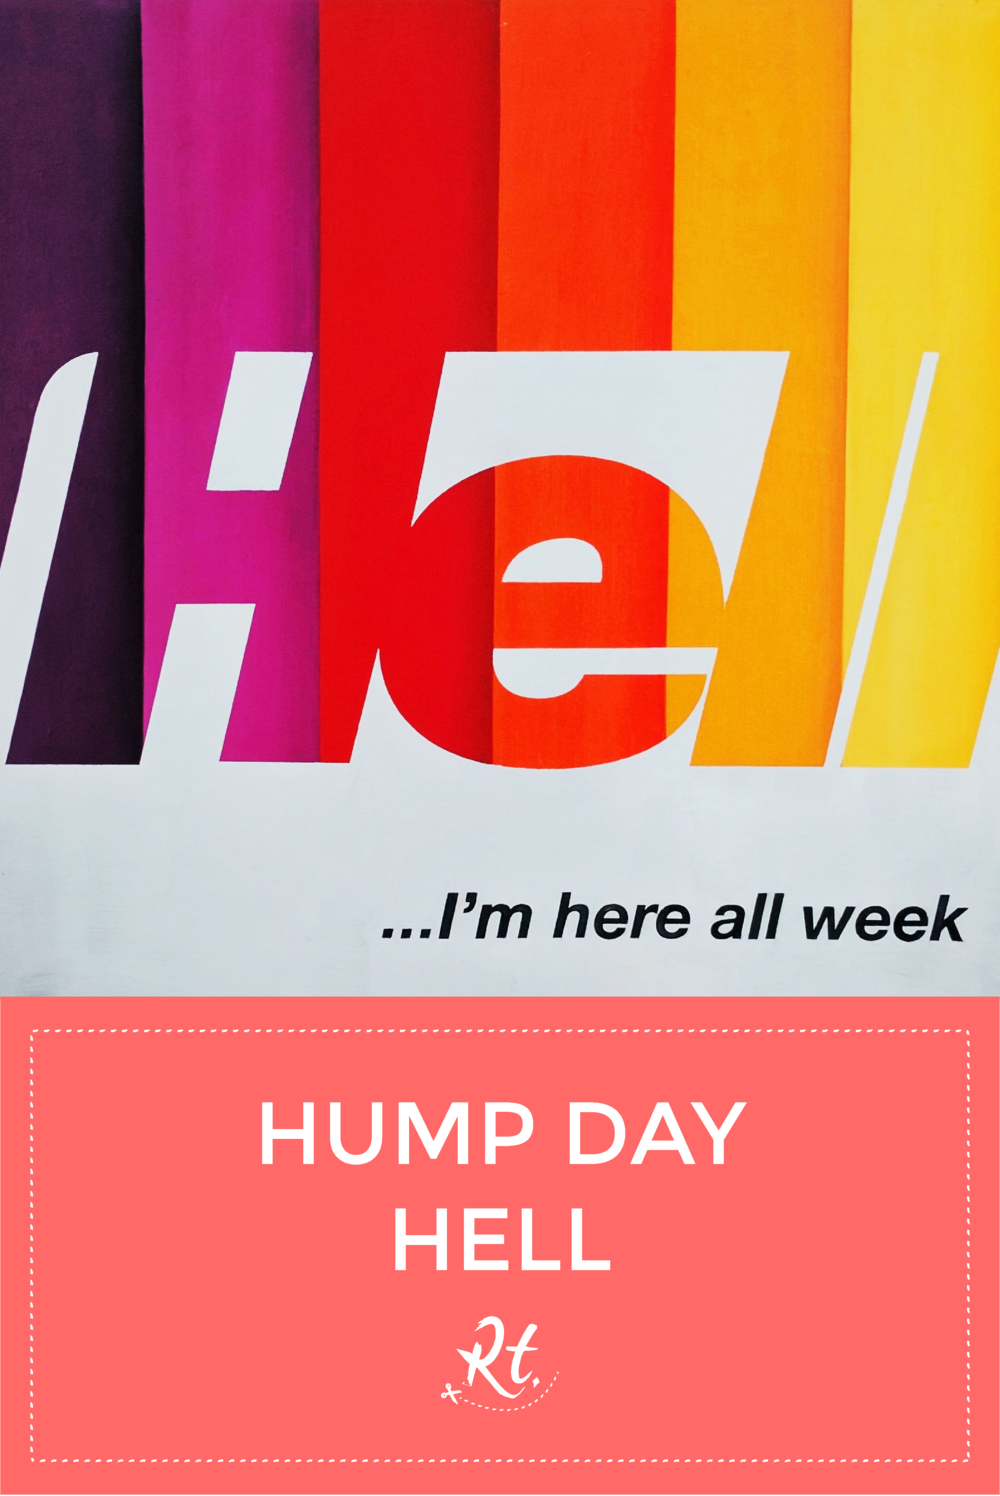 Hump Day Hell by Rosh Thanki, Harland Miller typography at Jealous Gallery